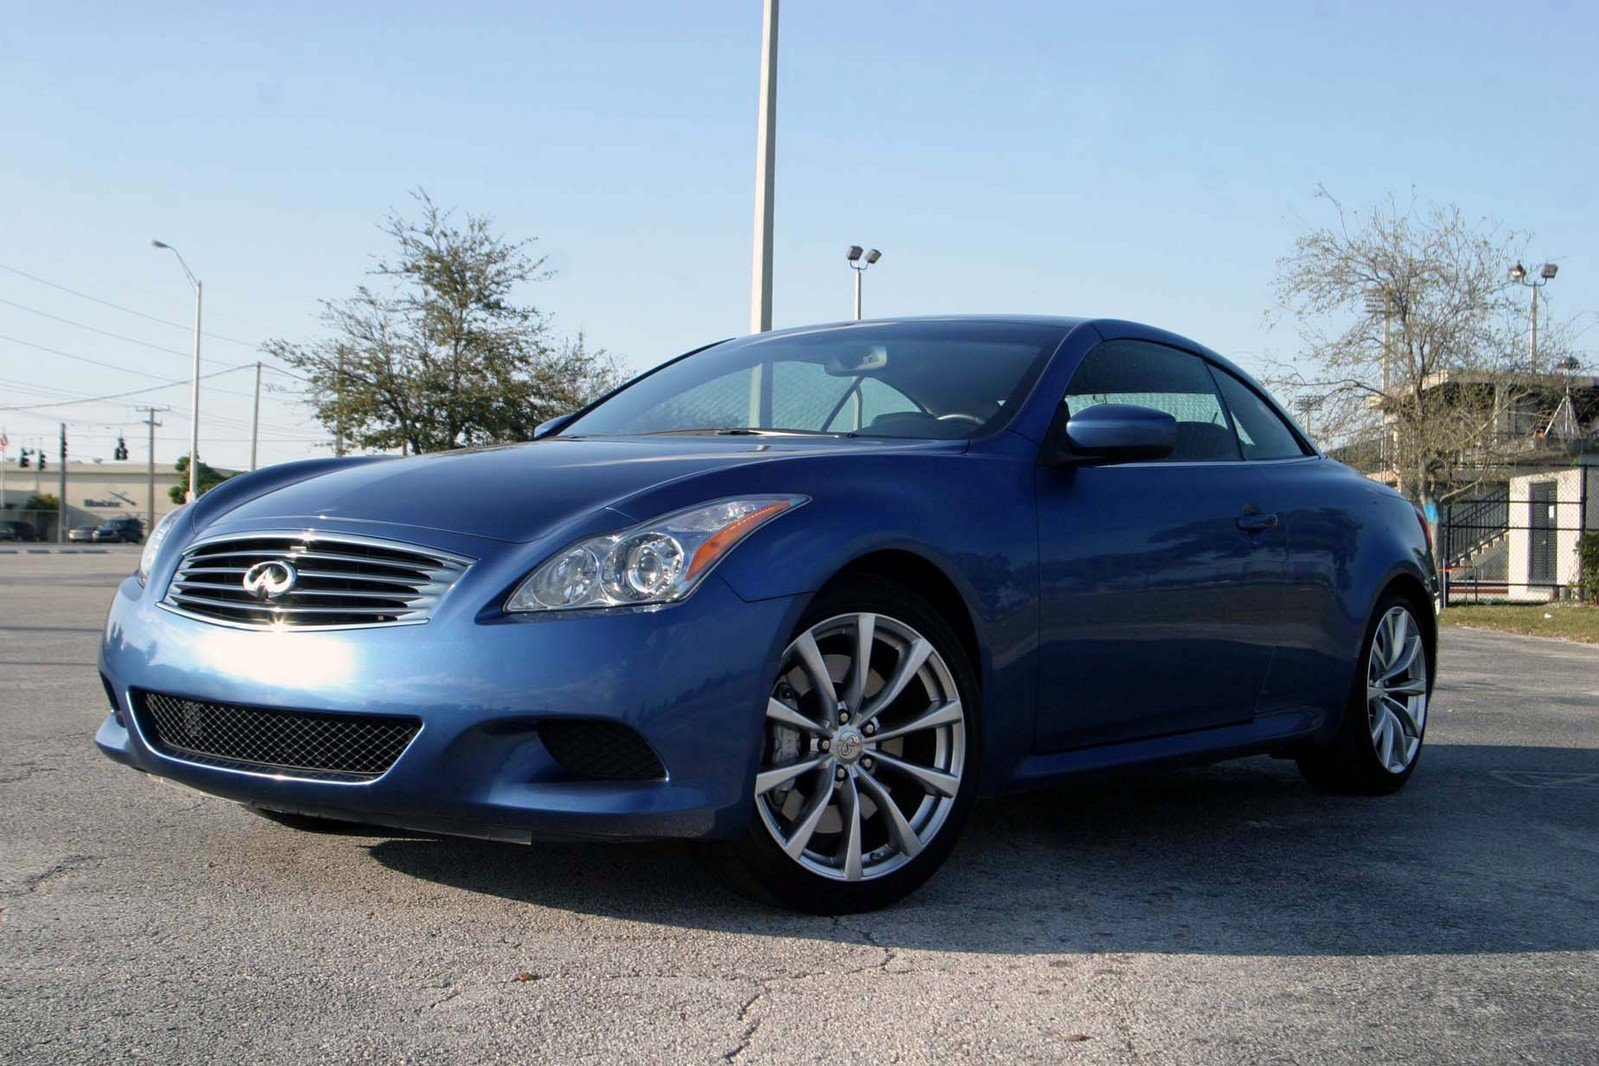 2010 infiniti g37s picture 354969 car review top speed. Black Bedroom Furniture Sets. Home Design Ideas